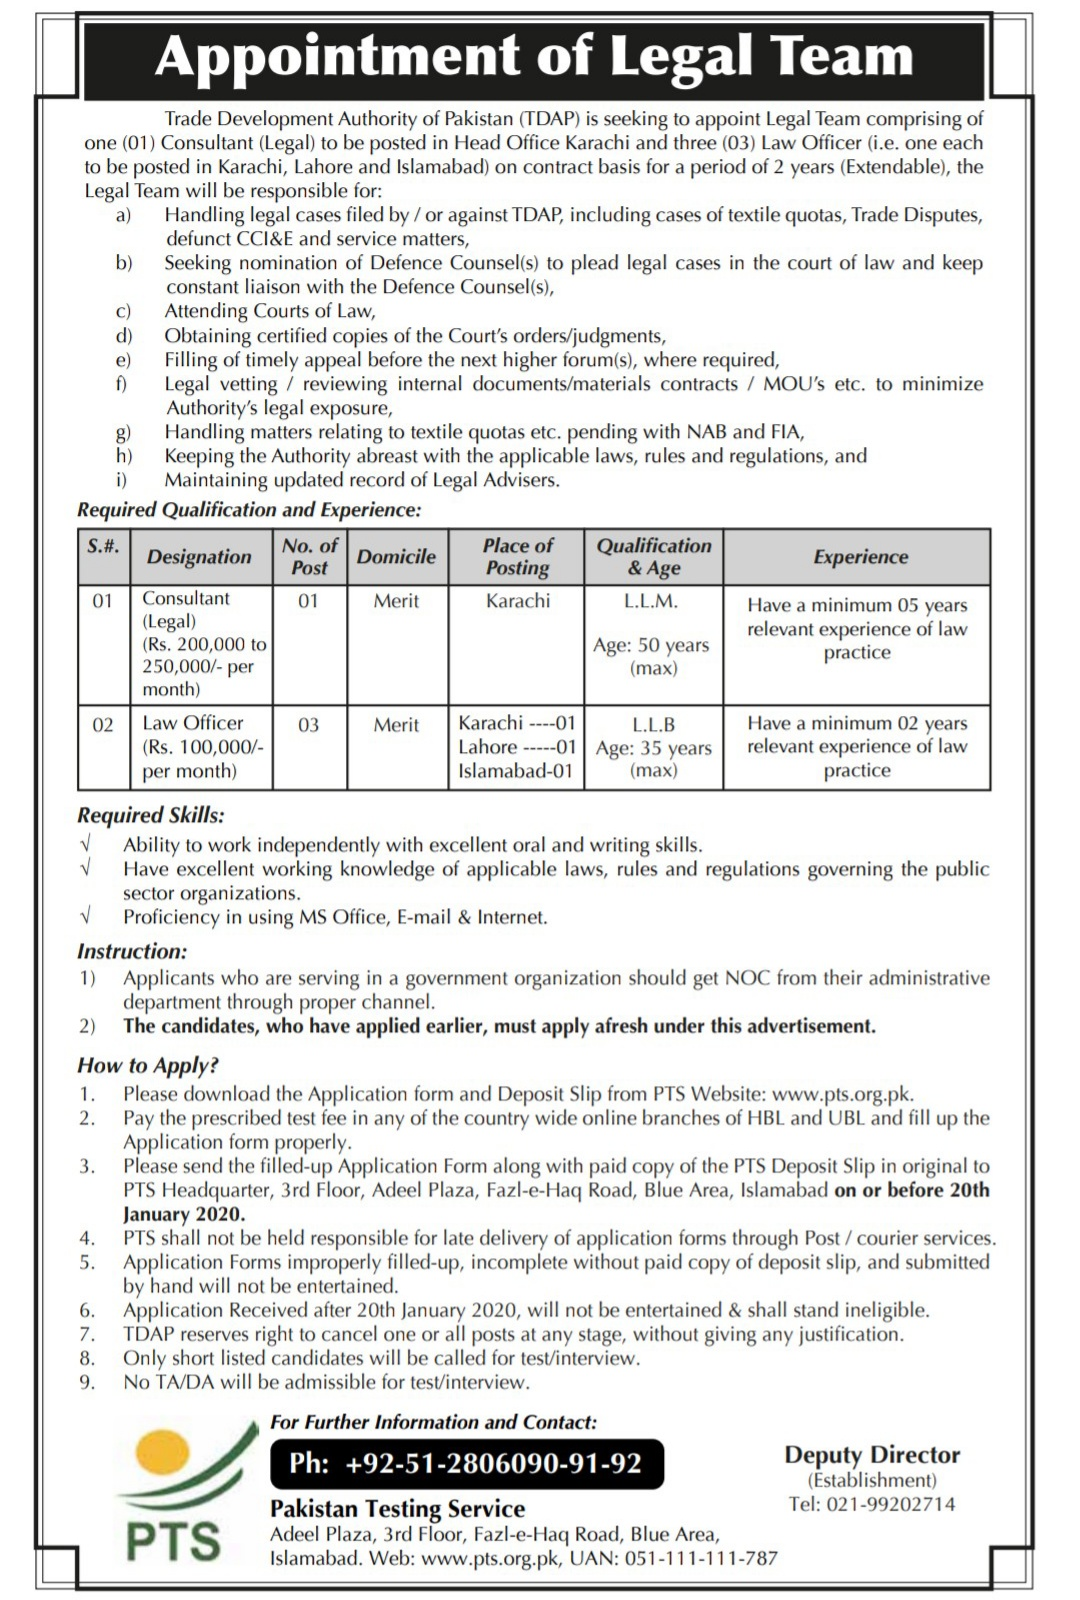 TDAP Jobs PTS Test Rol No Slip Trade Development Authority of Pakistan